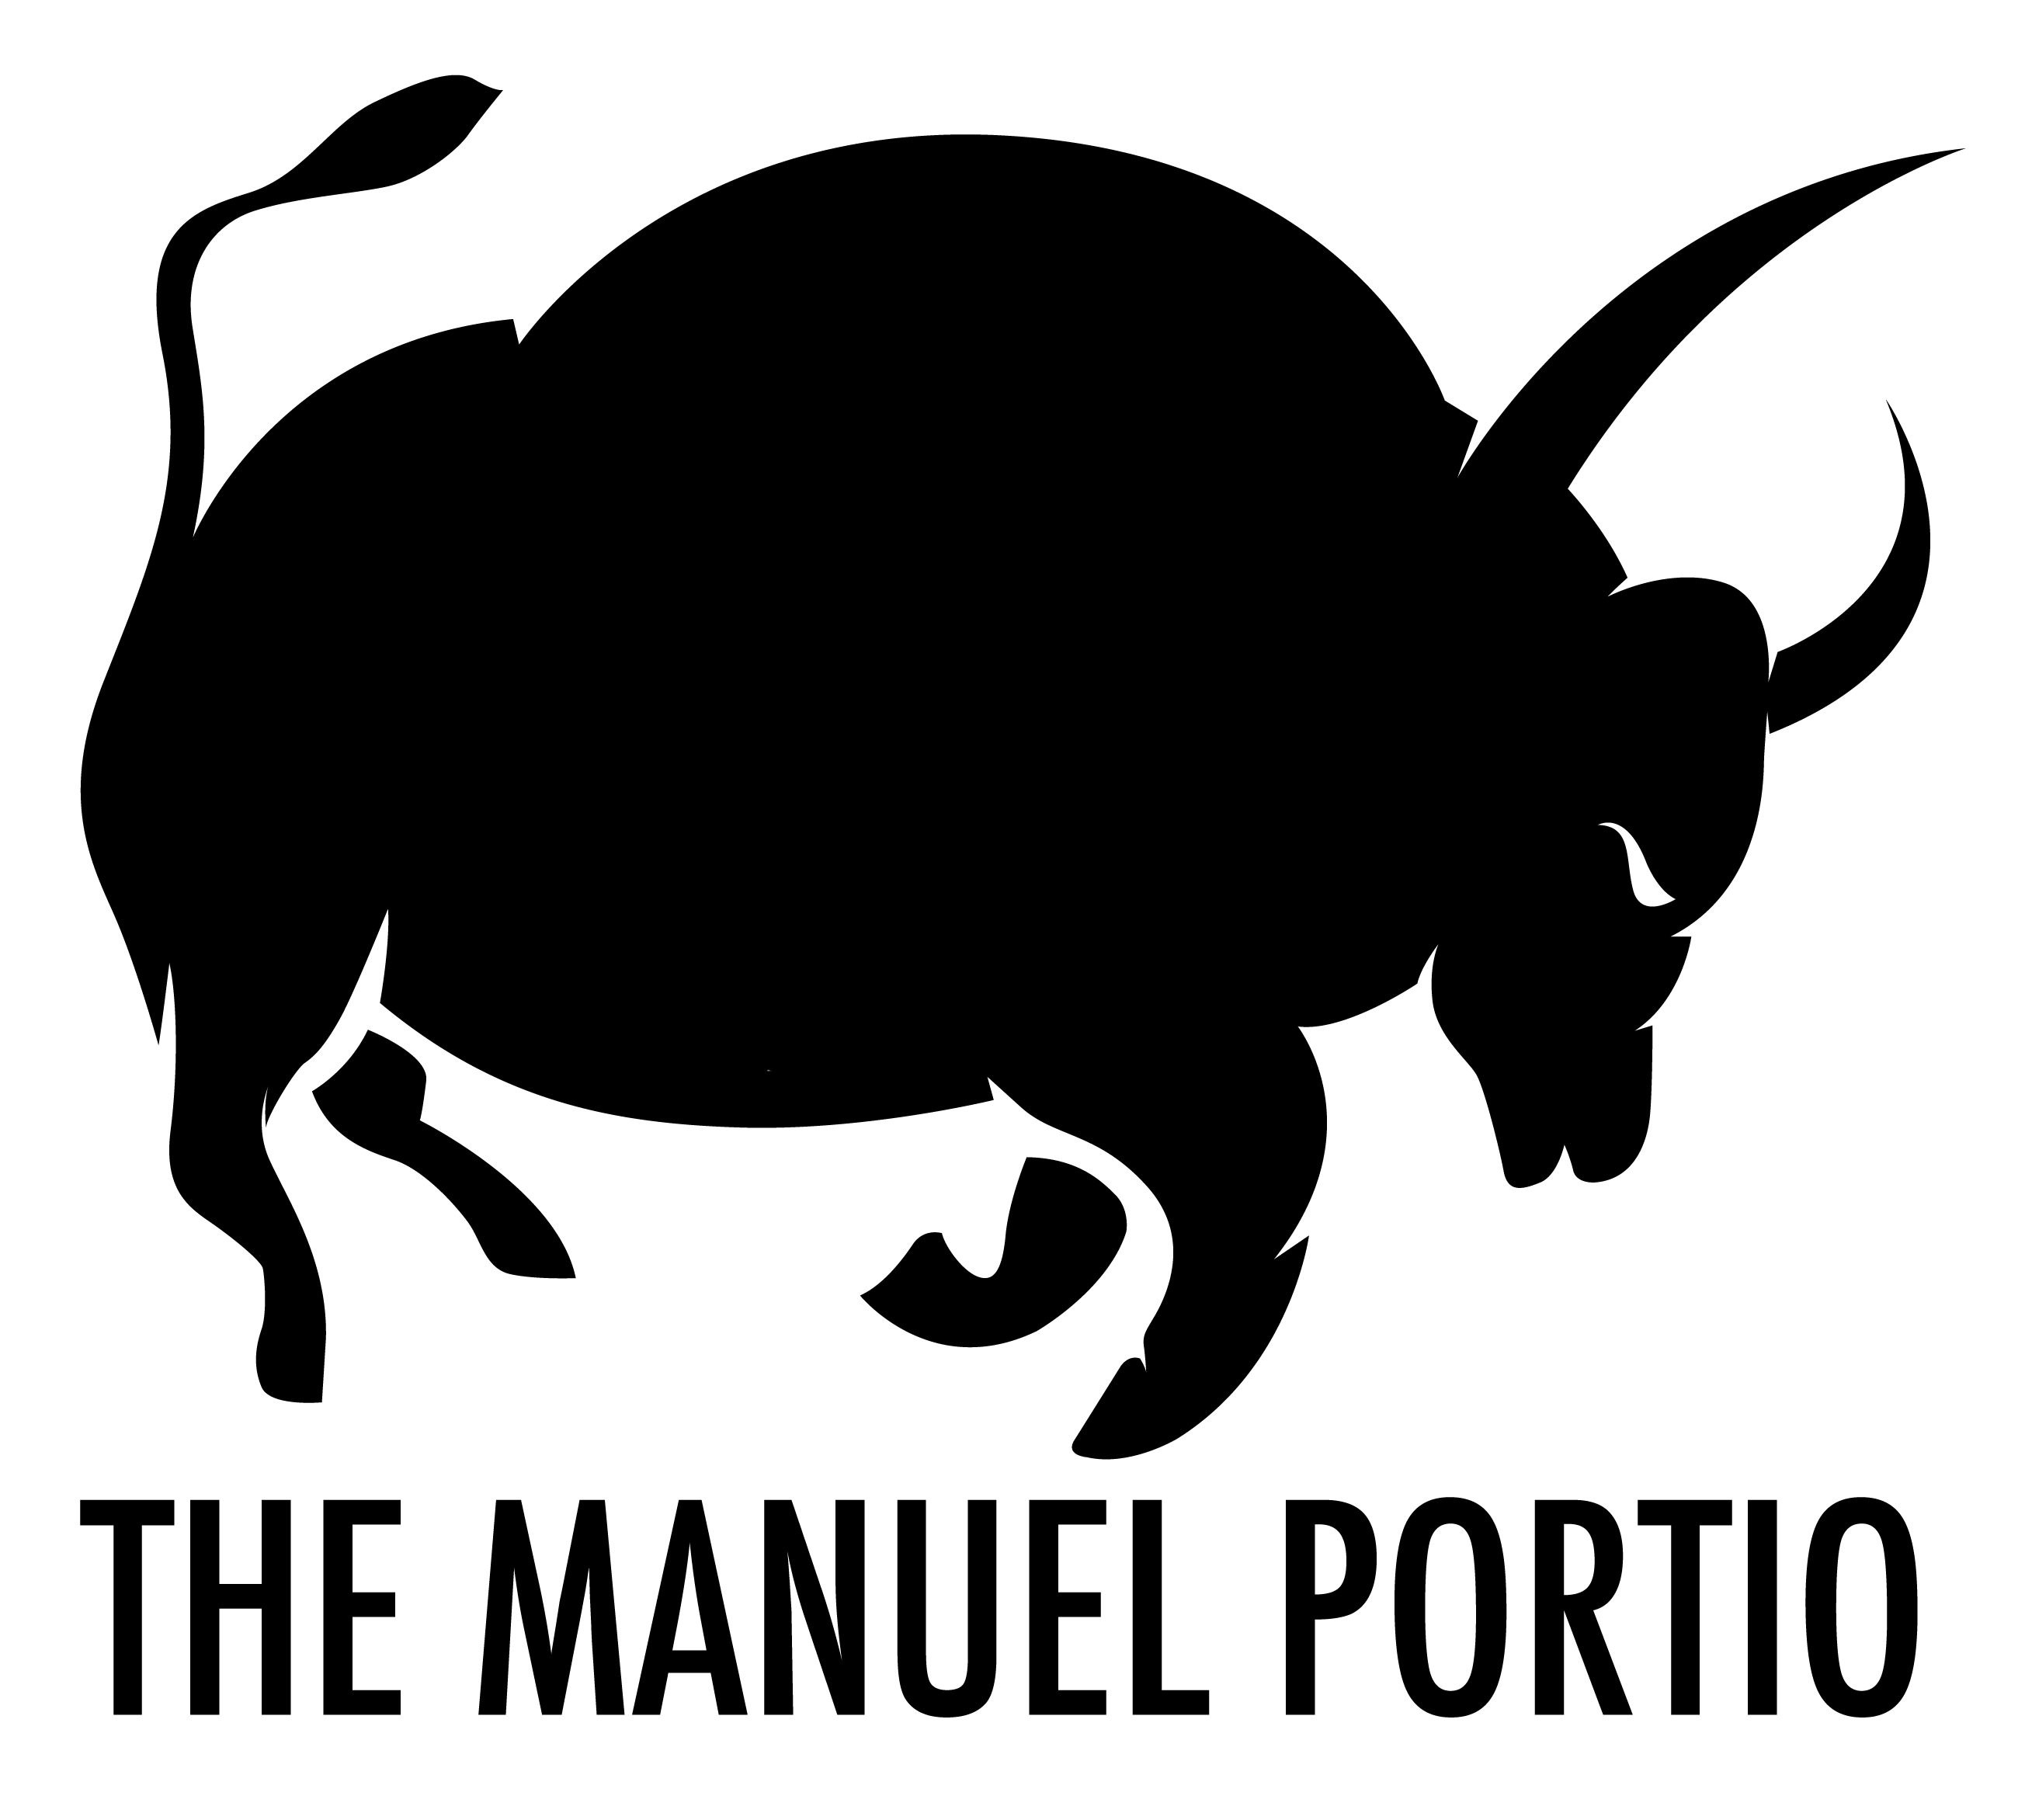 The-Manuel-Portio-Futura-Sticker-Black-Bull